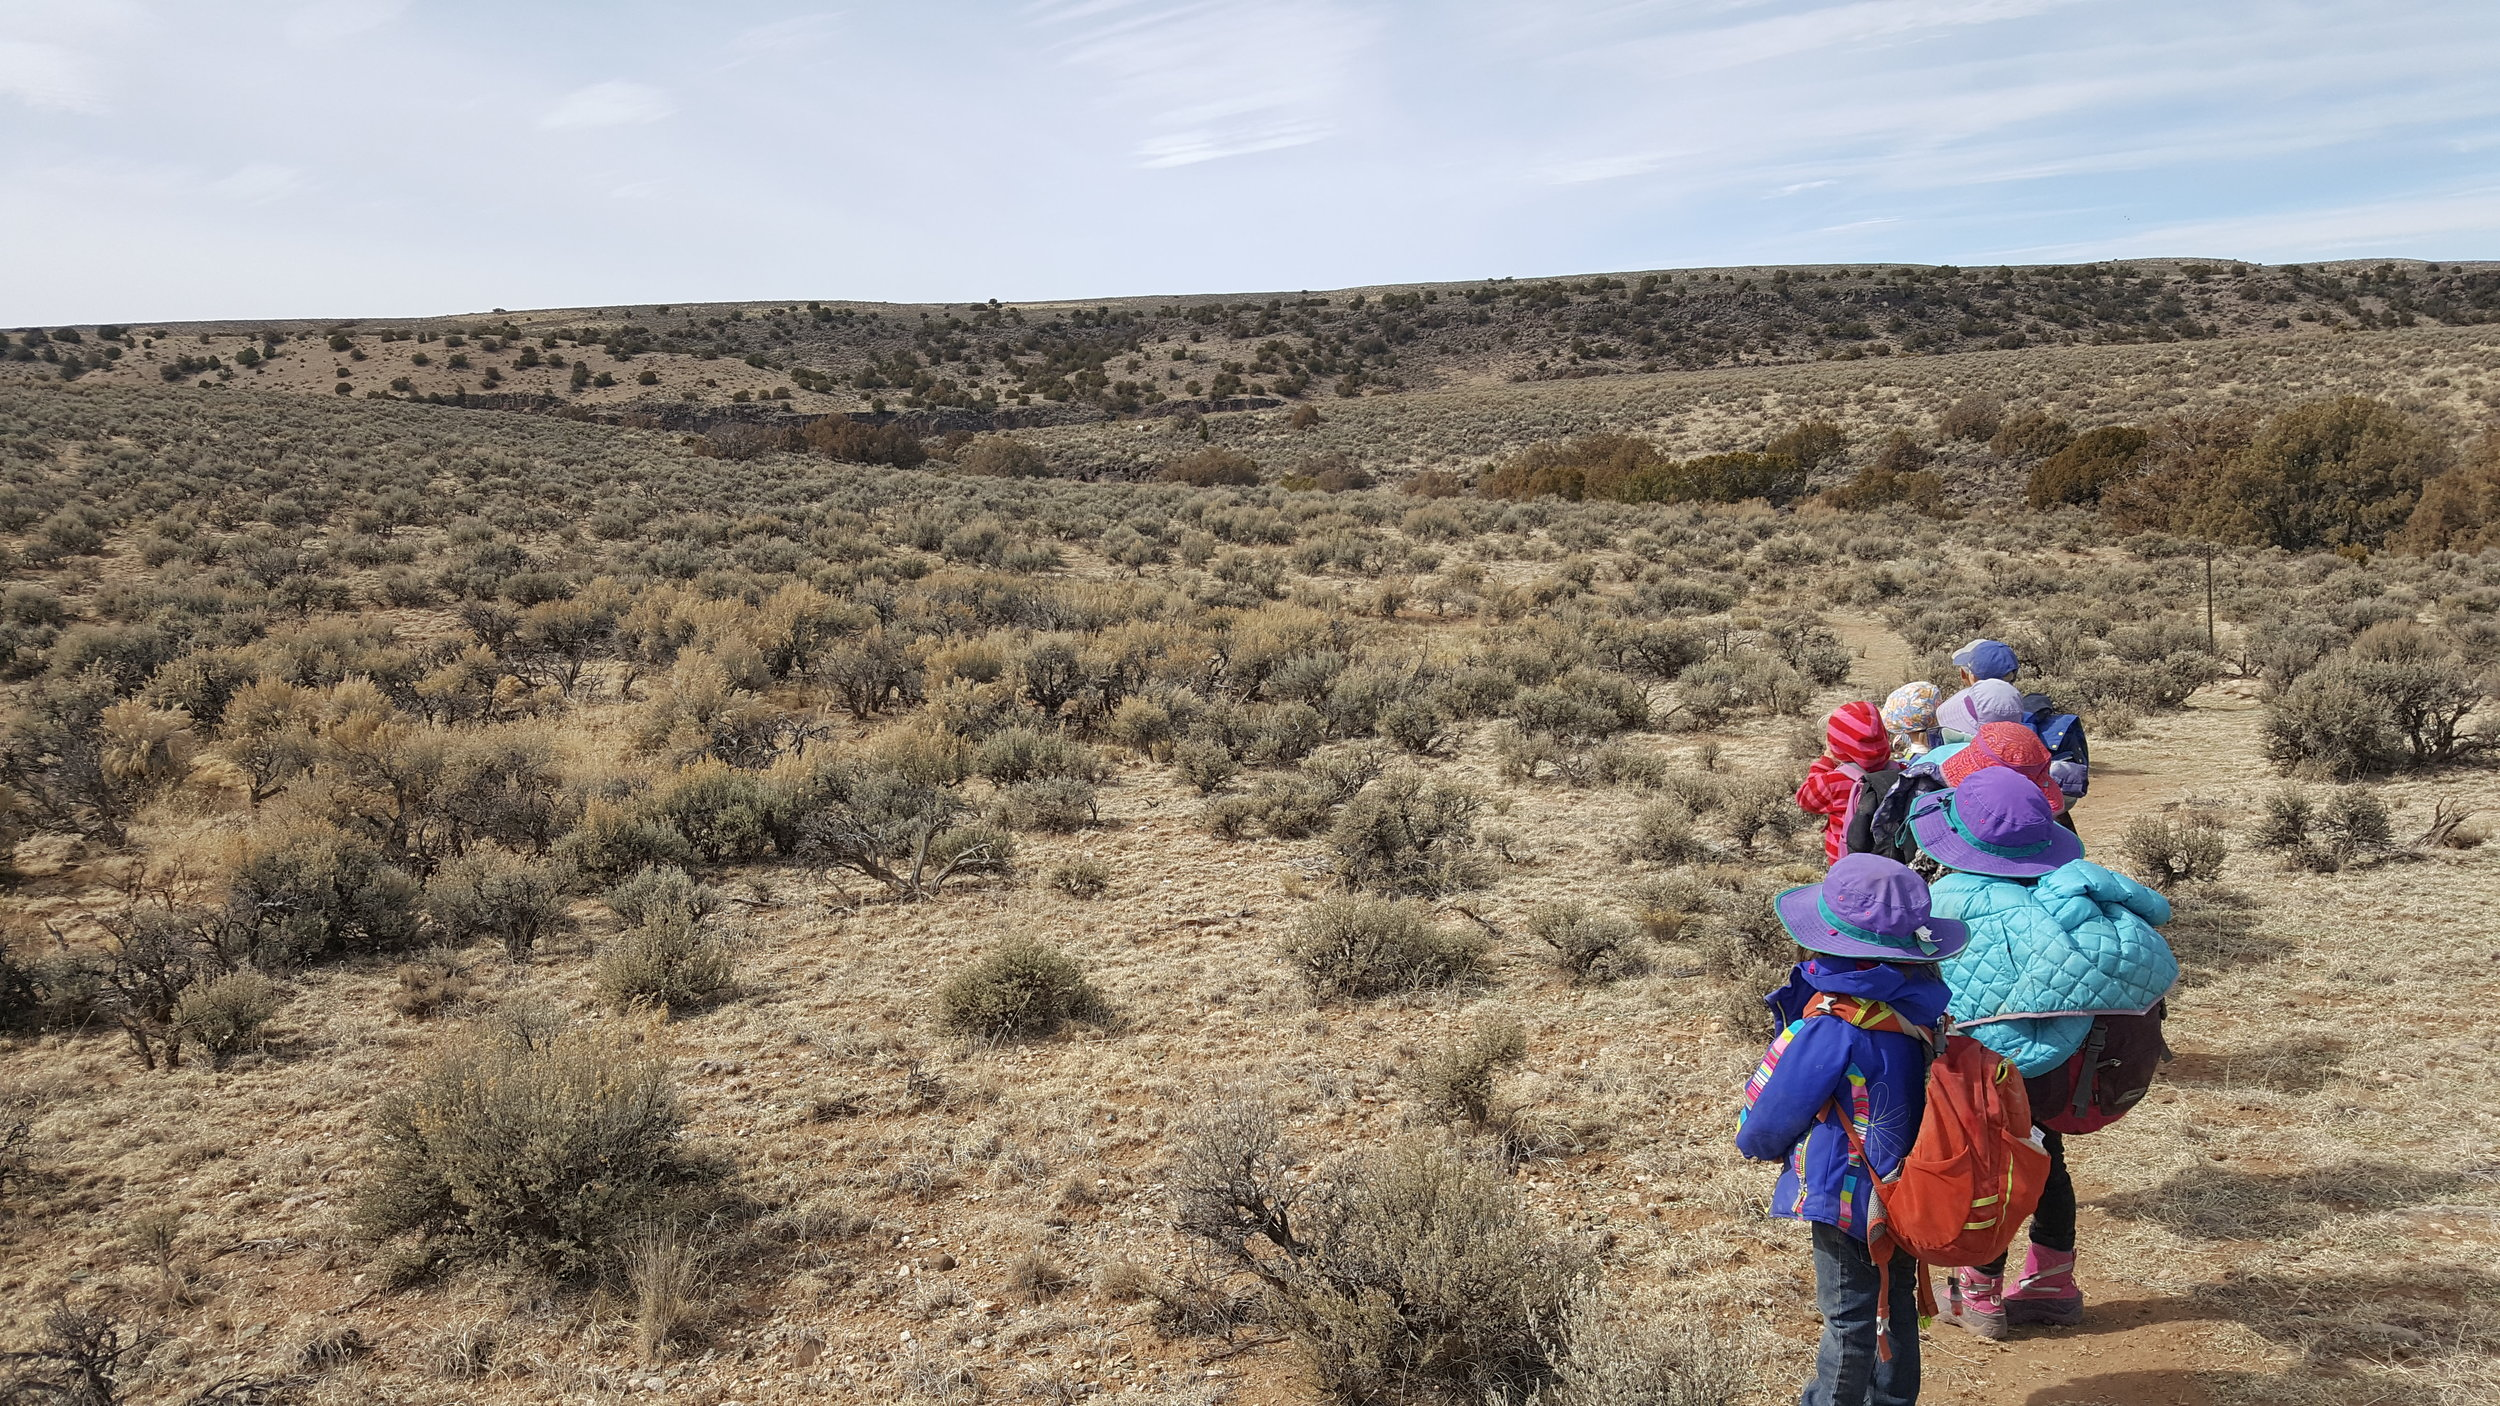 The kids staring at two big horn sheep. They were clear as day in real life, but the photo makes them so small you don't even see them. Oh well.